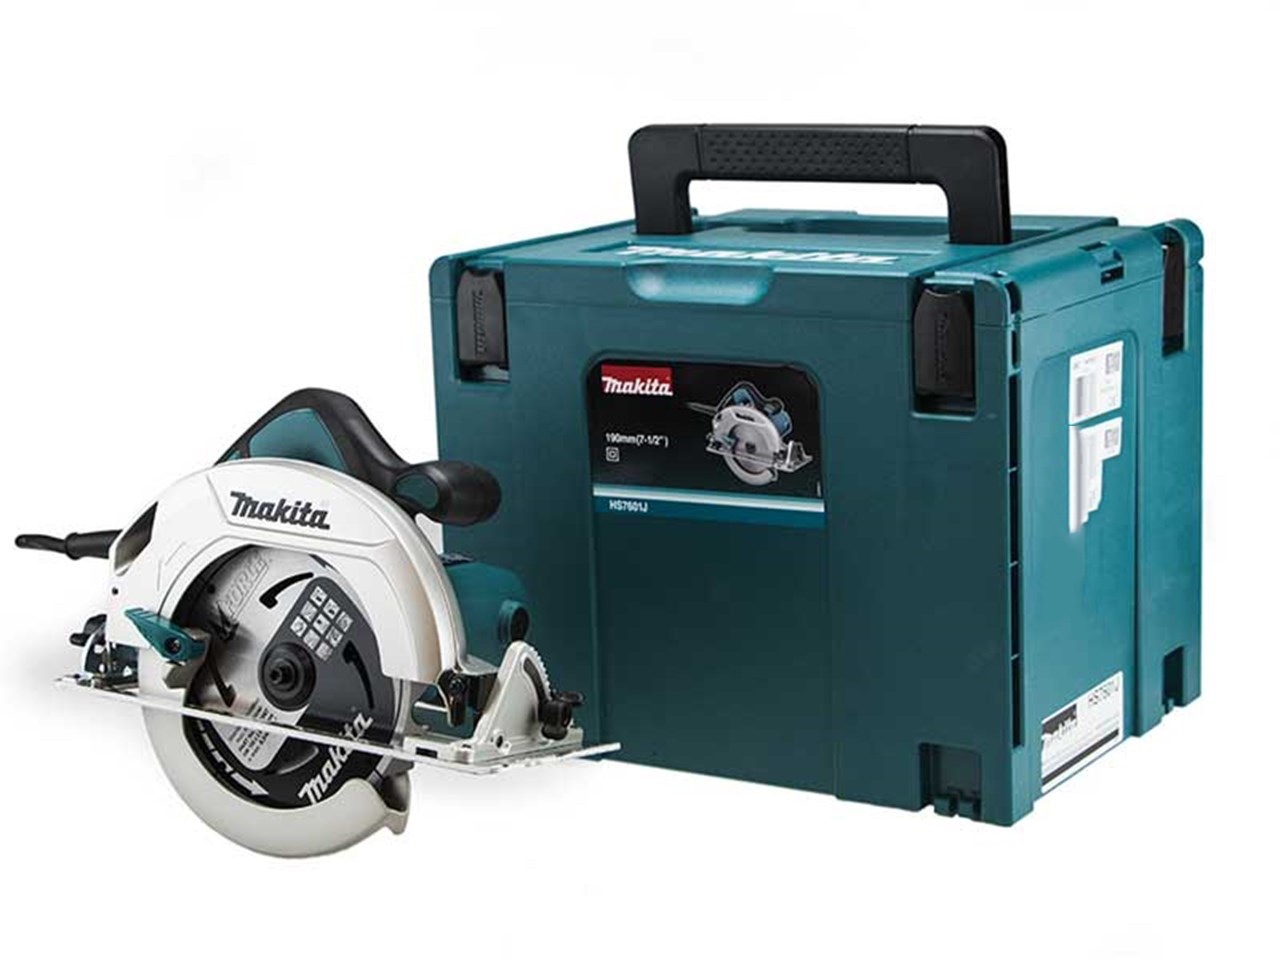 Makita HS7601J 240V 190mm Circular Saw - Single Action Lever for Quick Adjustment of Cutting Depth